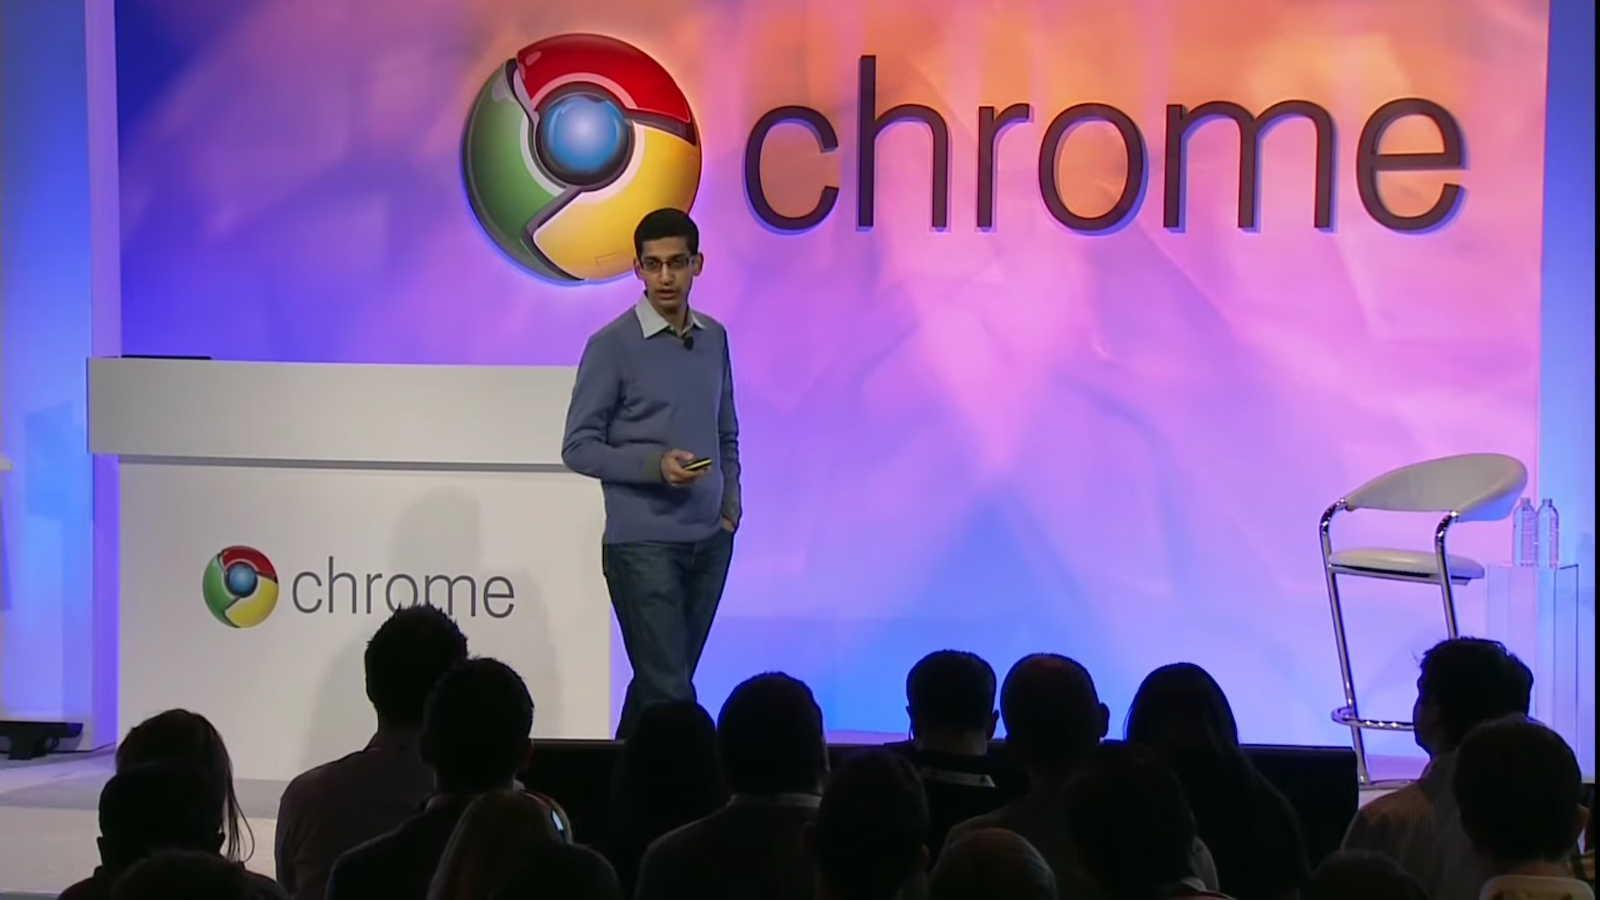 Google's CEO may have just confirmed the split of Chrome and Chrome OS